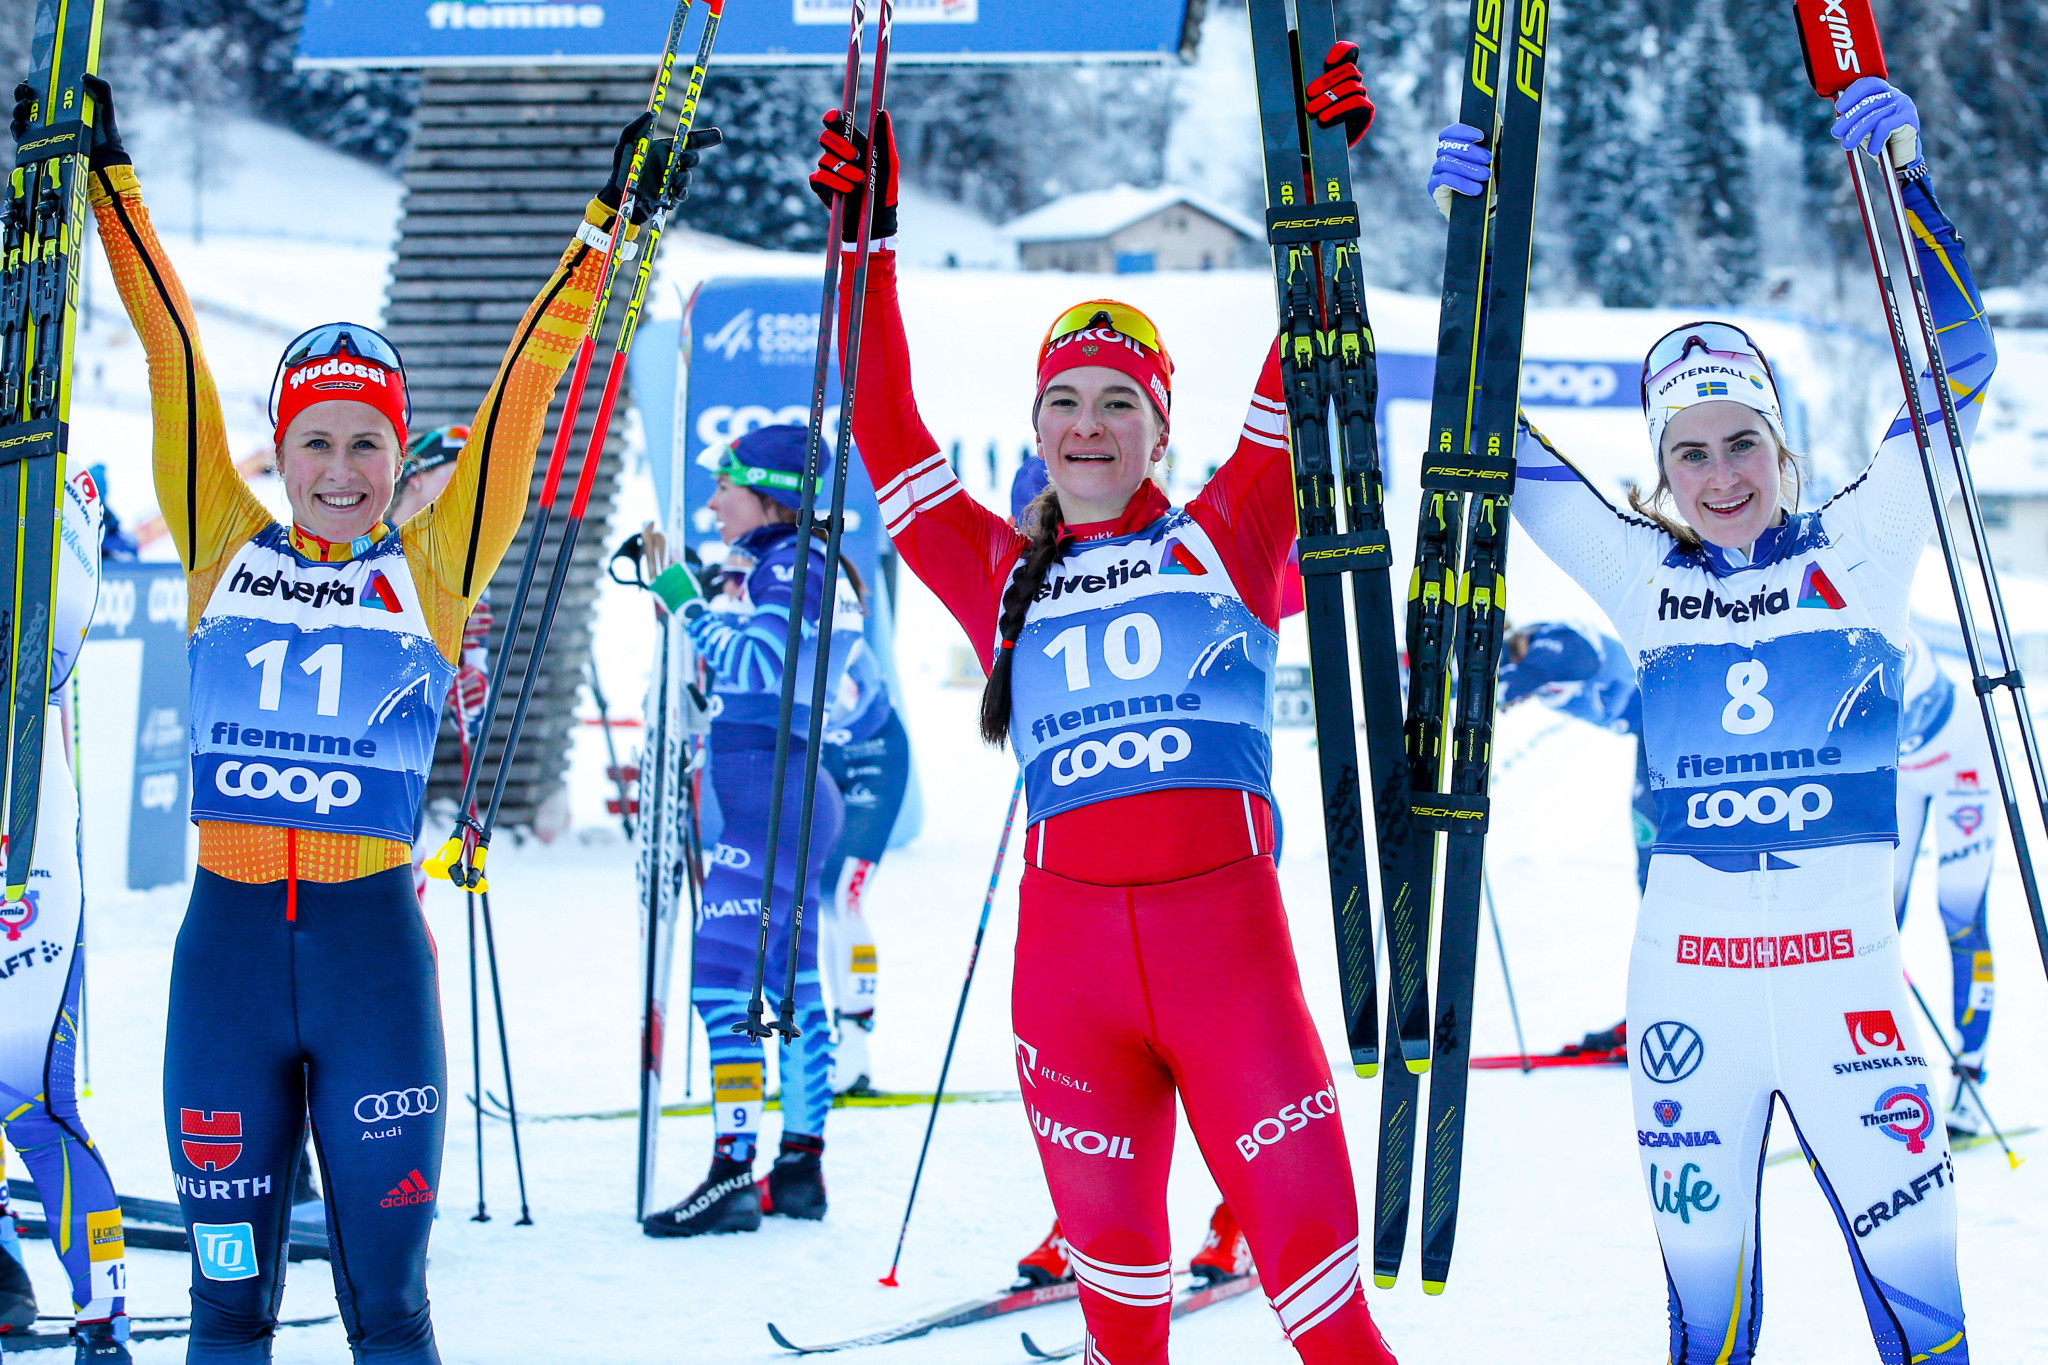 Natalia Nepryaeva, centre, celebrates after winning the 10km classic mass start in Val di Fiemme ©Getty Images